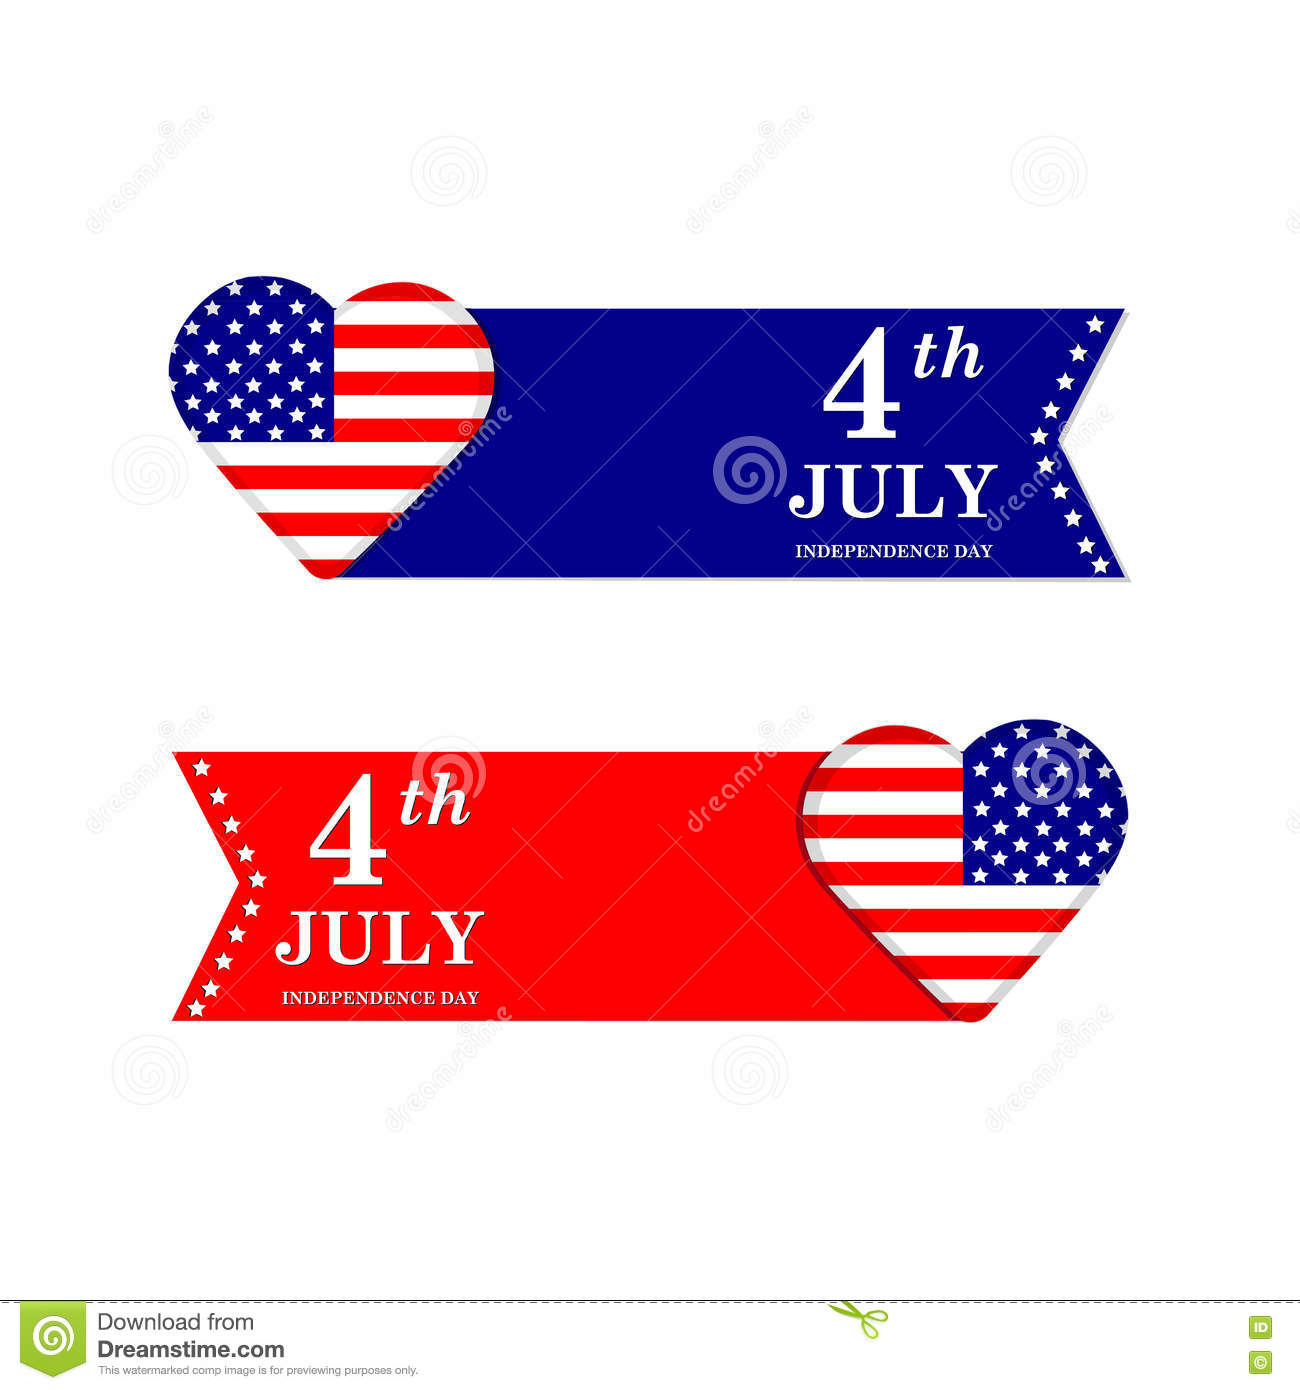 4th Of July Independence Day United States Of America Symbols